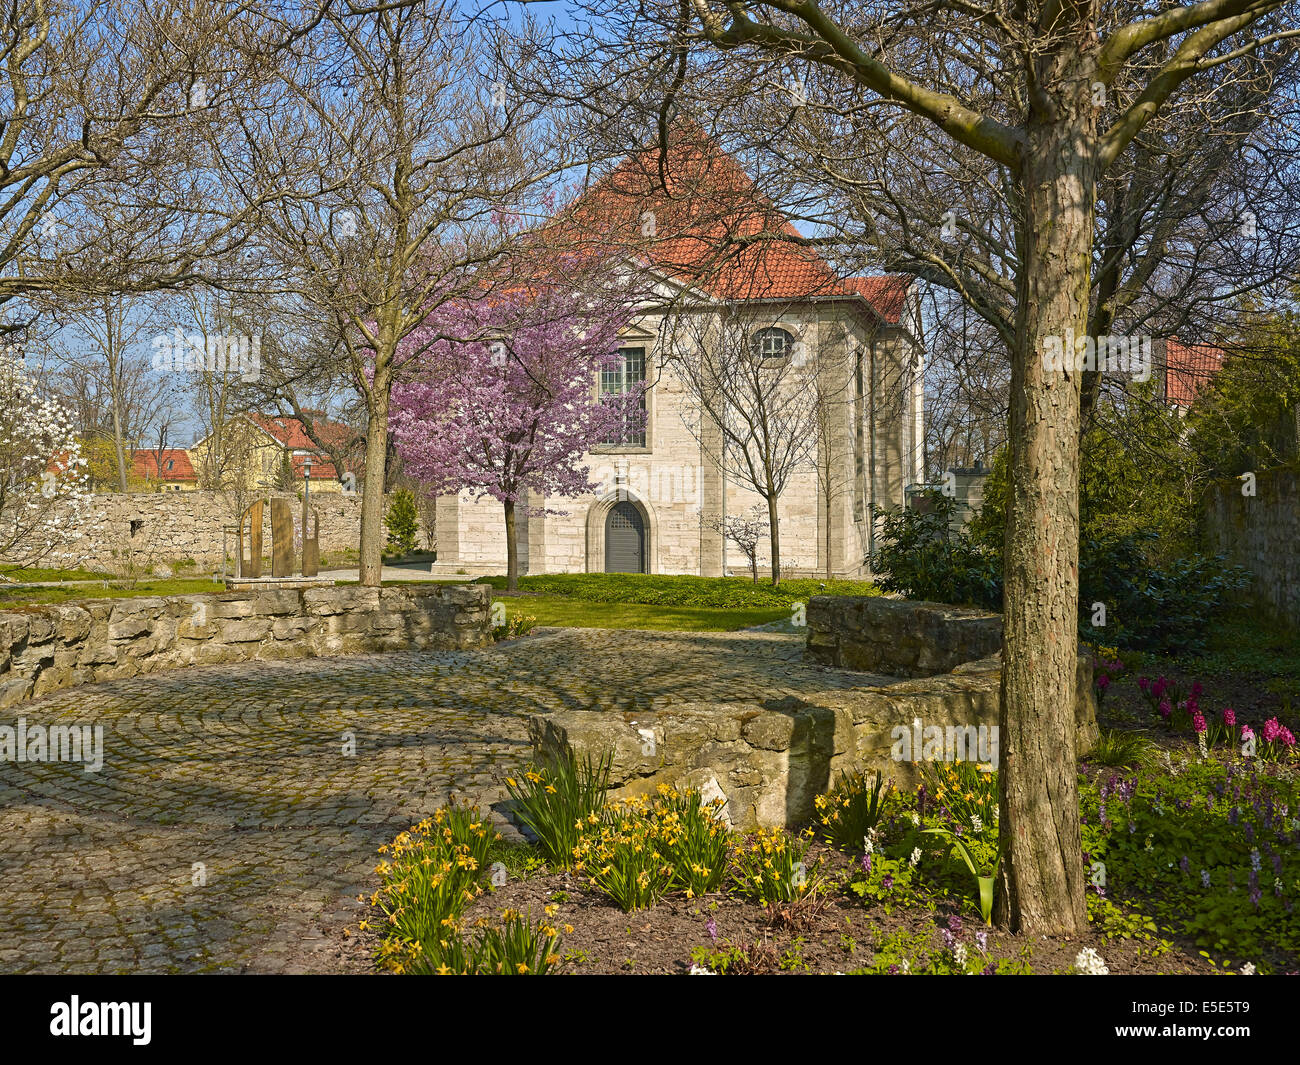 Arboretum with Trinity Church in Bad Langensalza, Germany - Stock Image